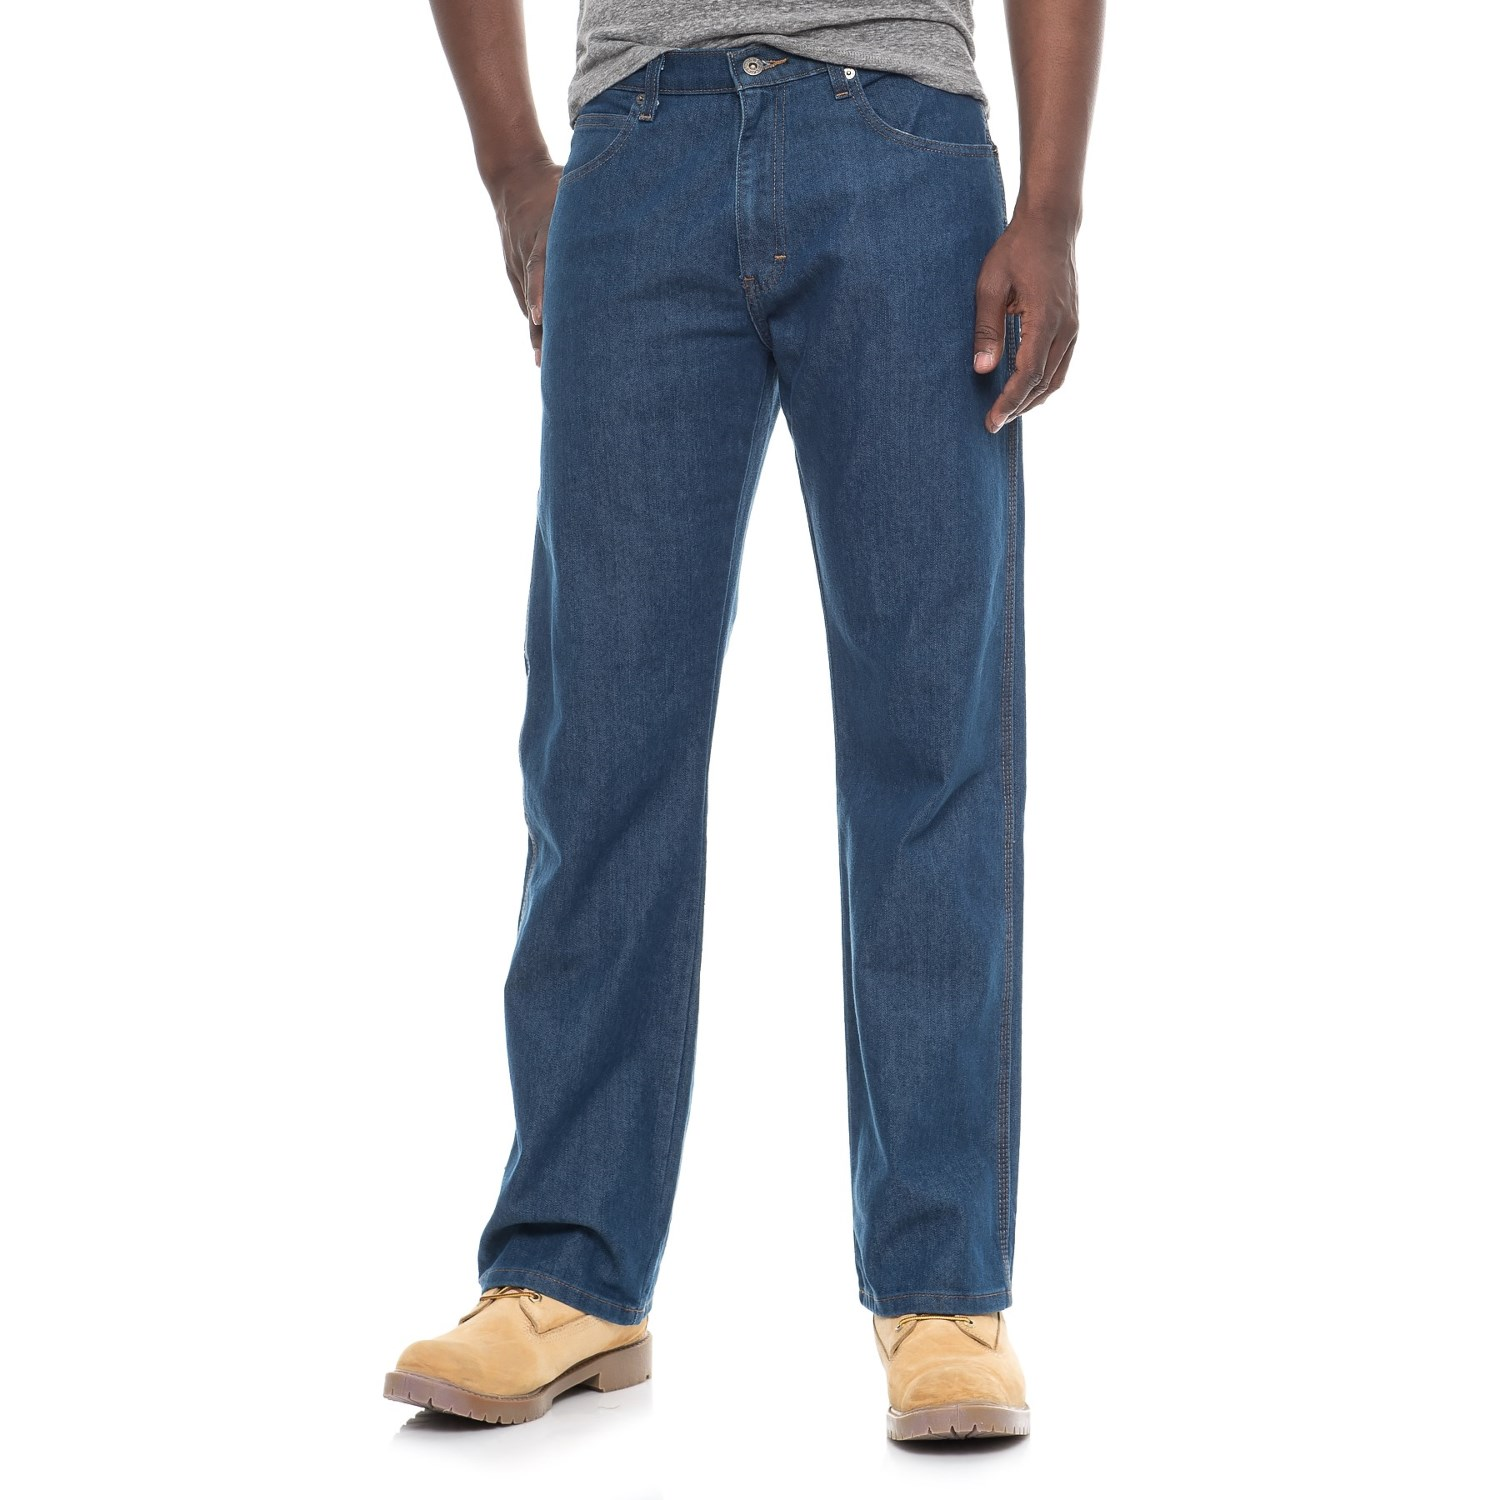 4b02299c Dickies Flex Carpenter Tough Max Jeans - Relaxed Fit, Straight Leg (For  Men) ...